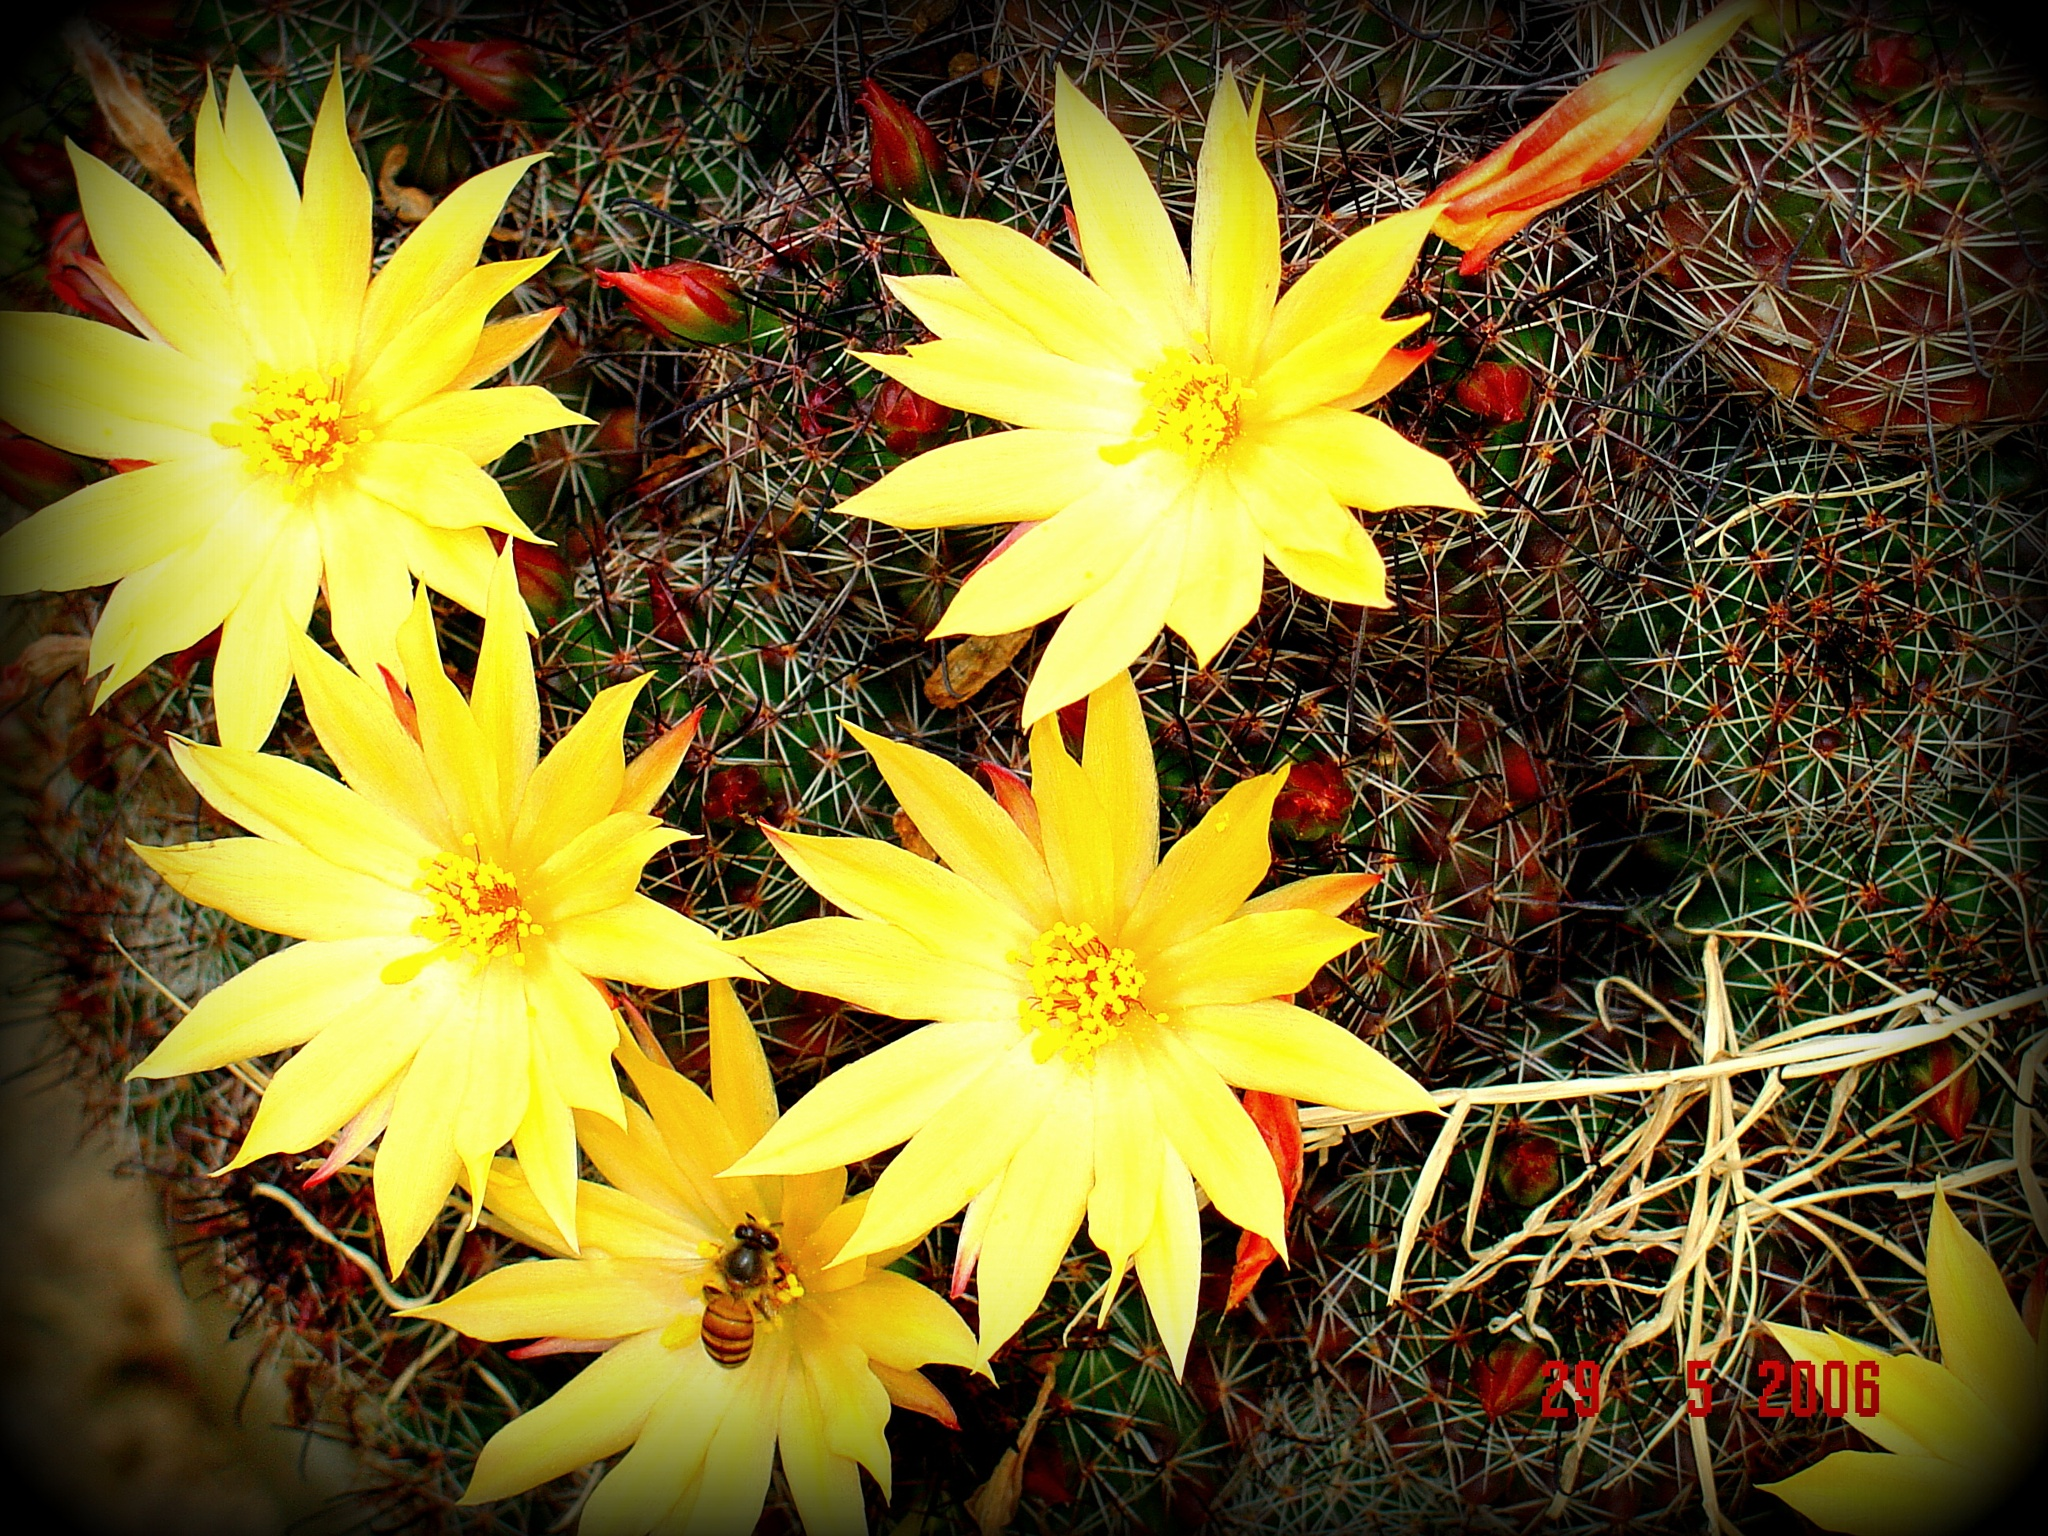 Even Thorns have beauty by Suresh Tewari